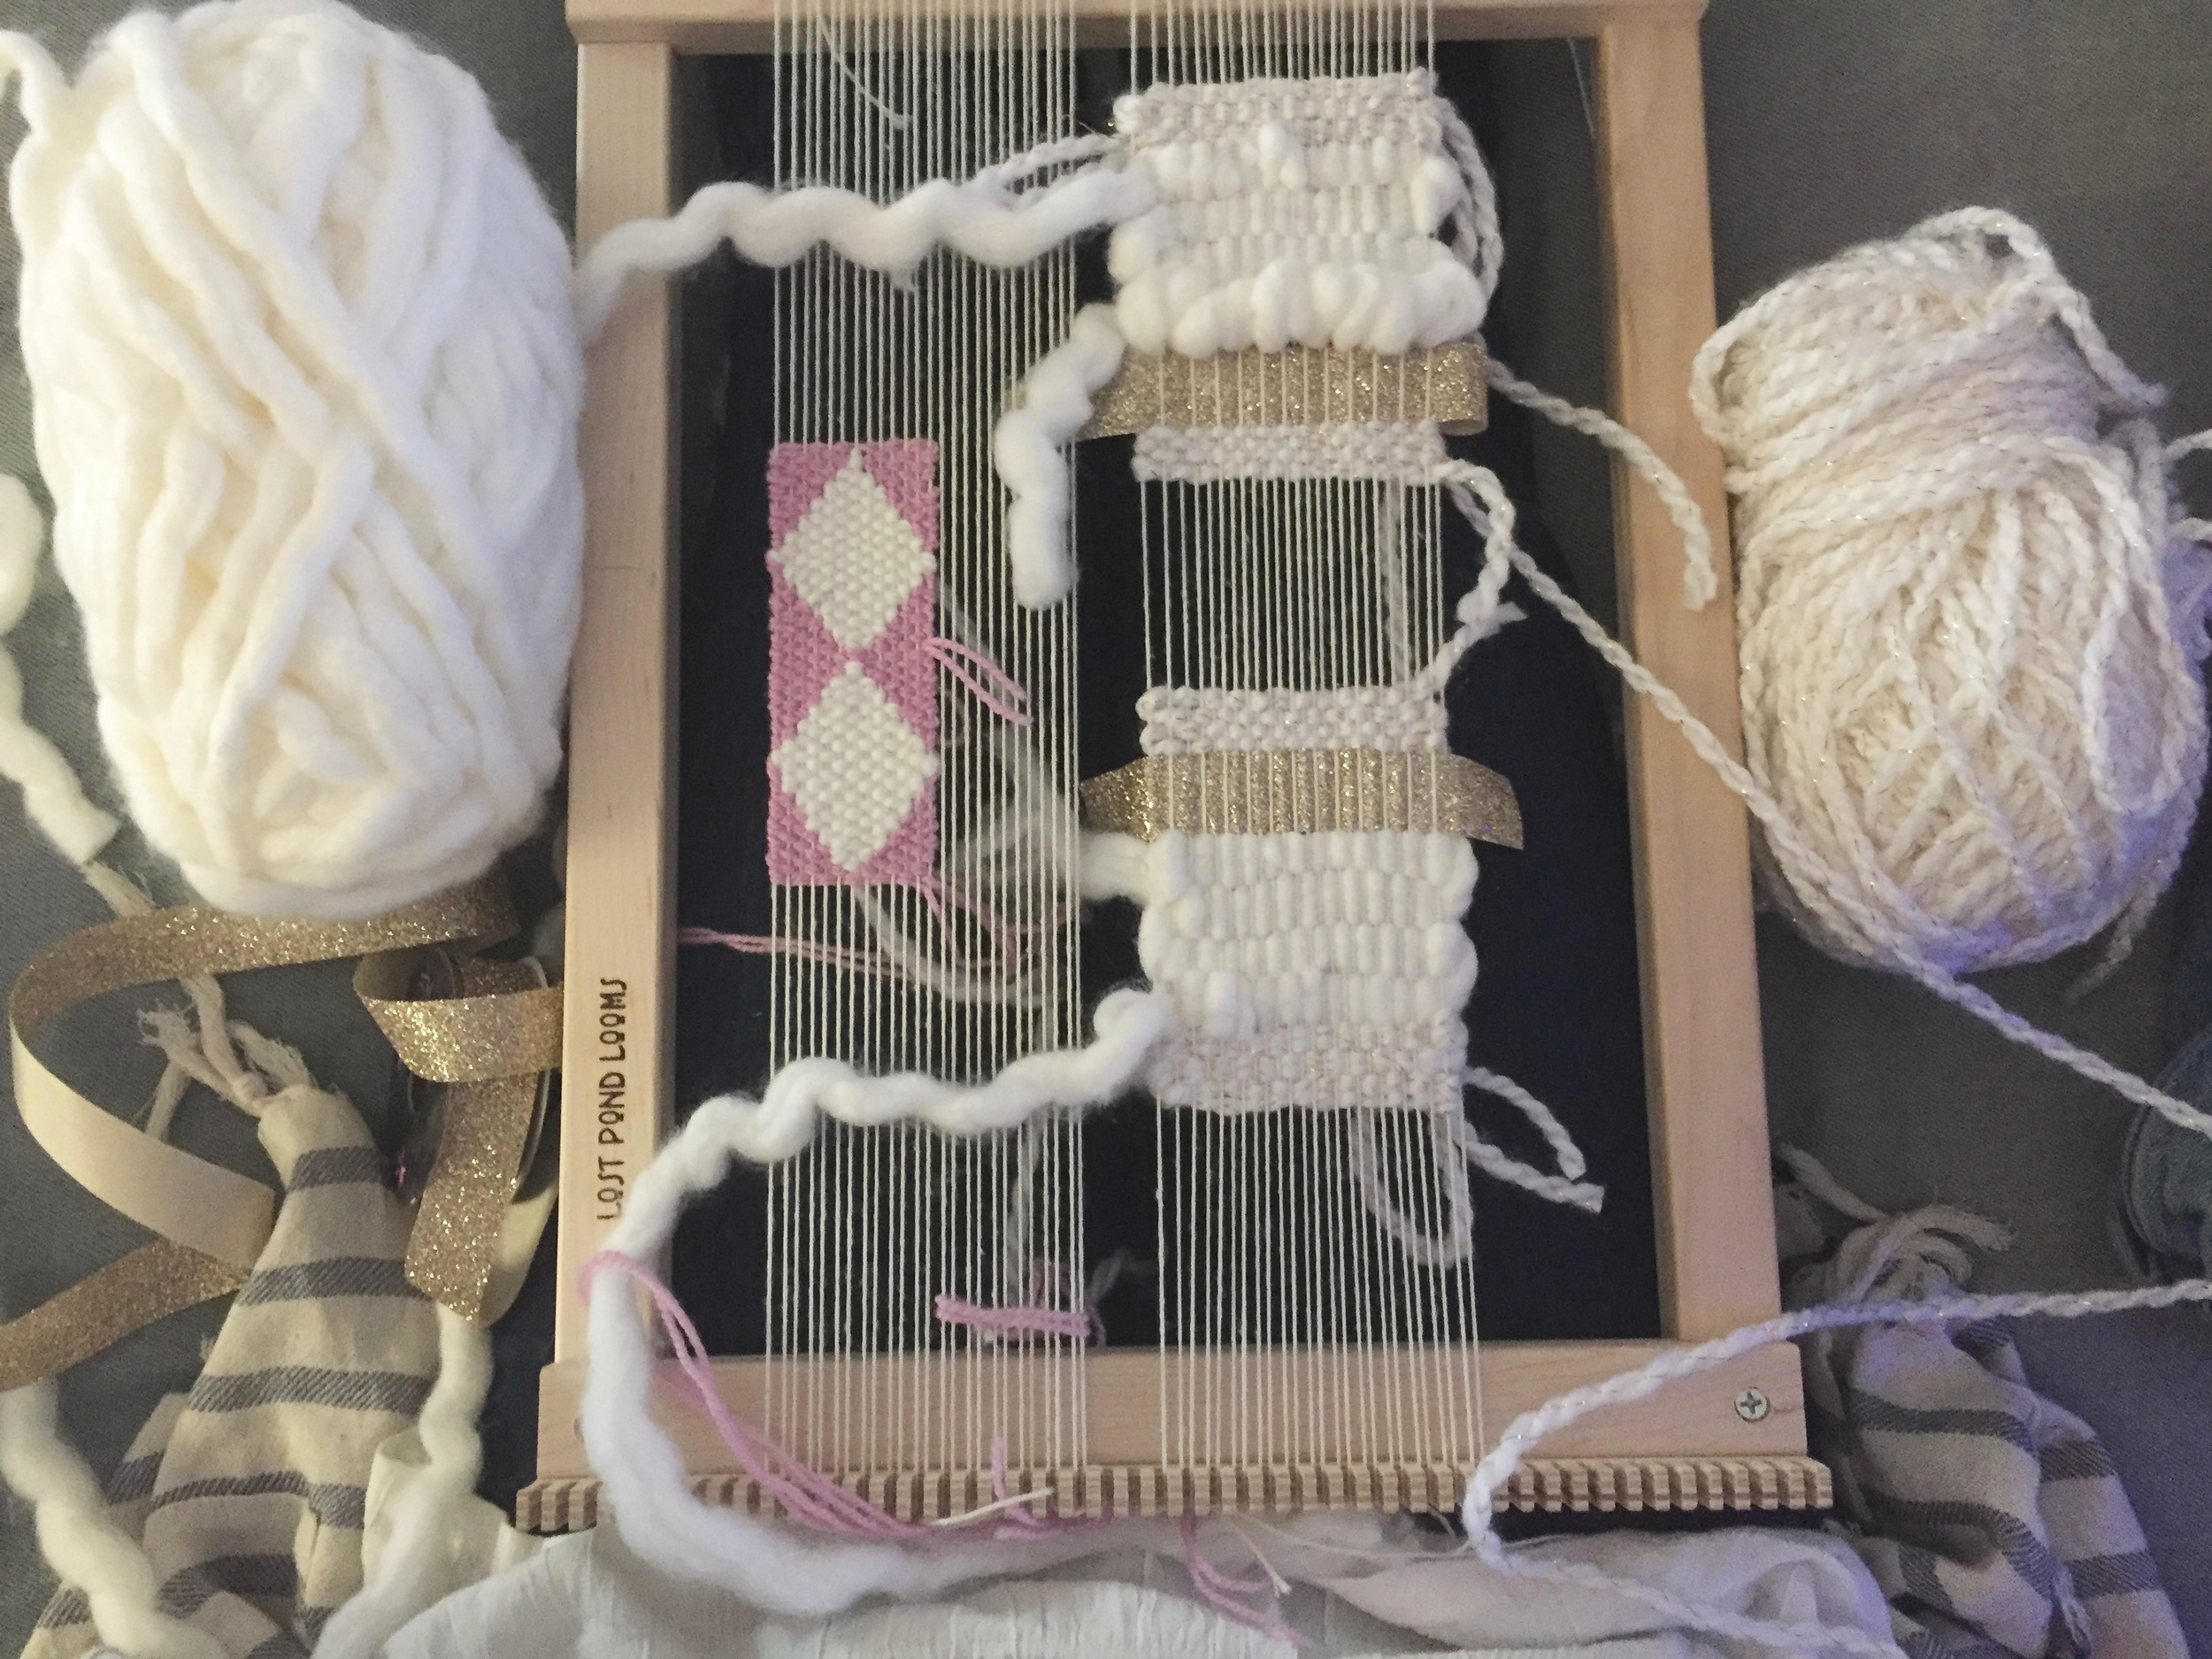 The good thing about mini weavings is that you can make multiples on the same loom at the same time!